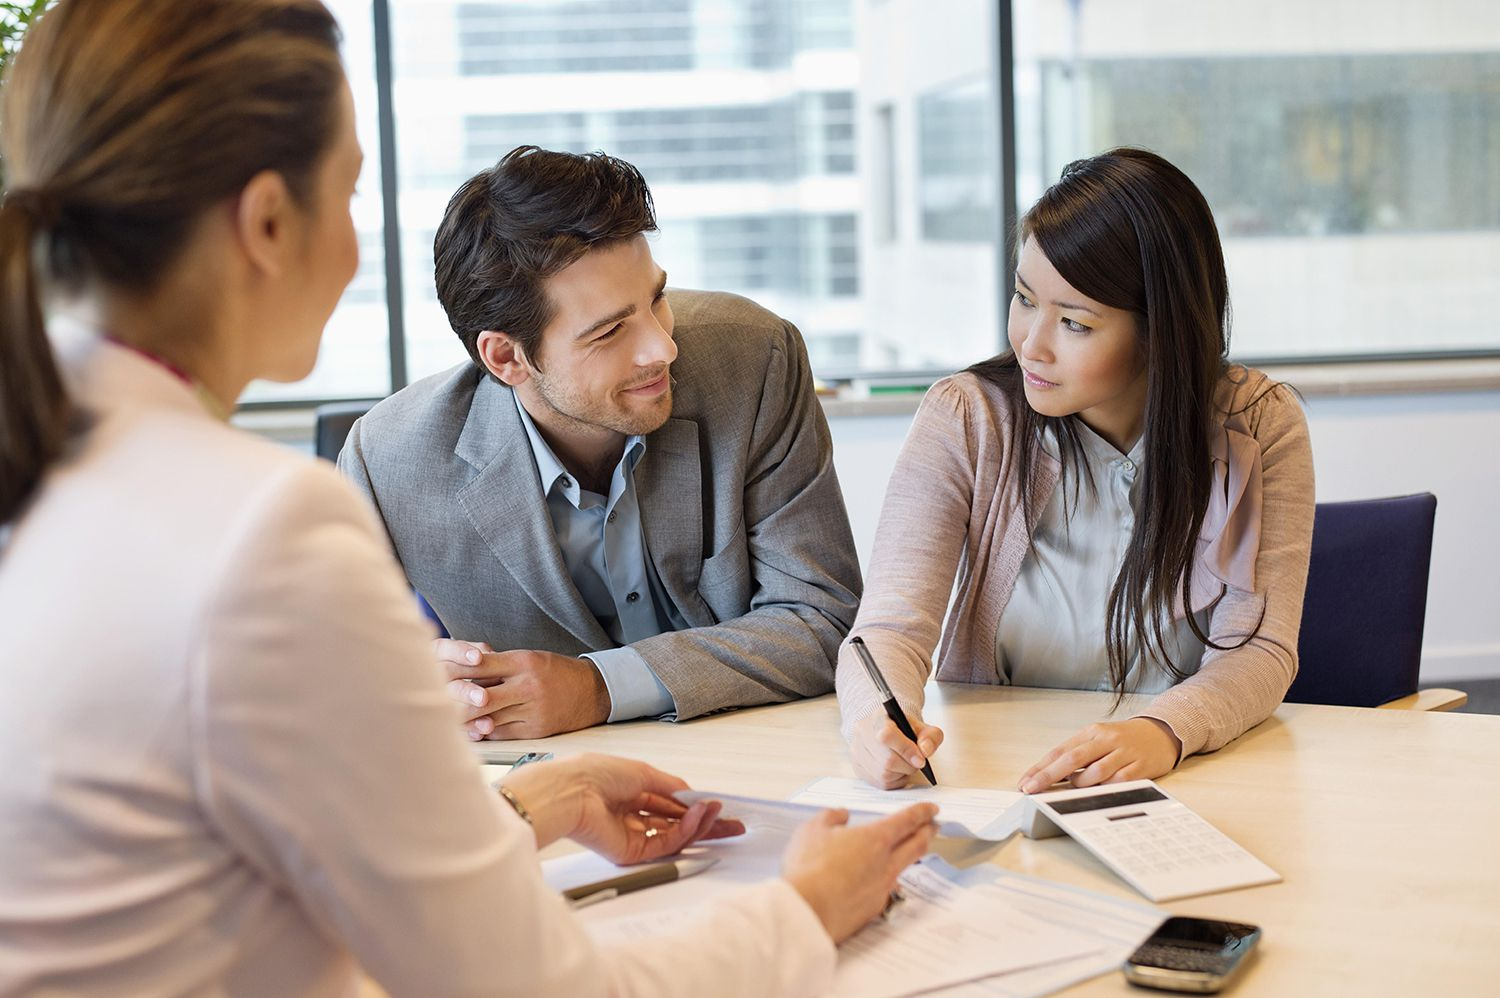 Using a Cosigner Service for Your Apartment Lease – Benefits & Risks